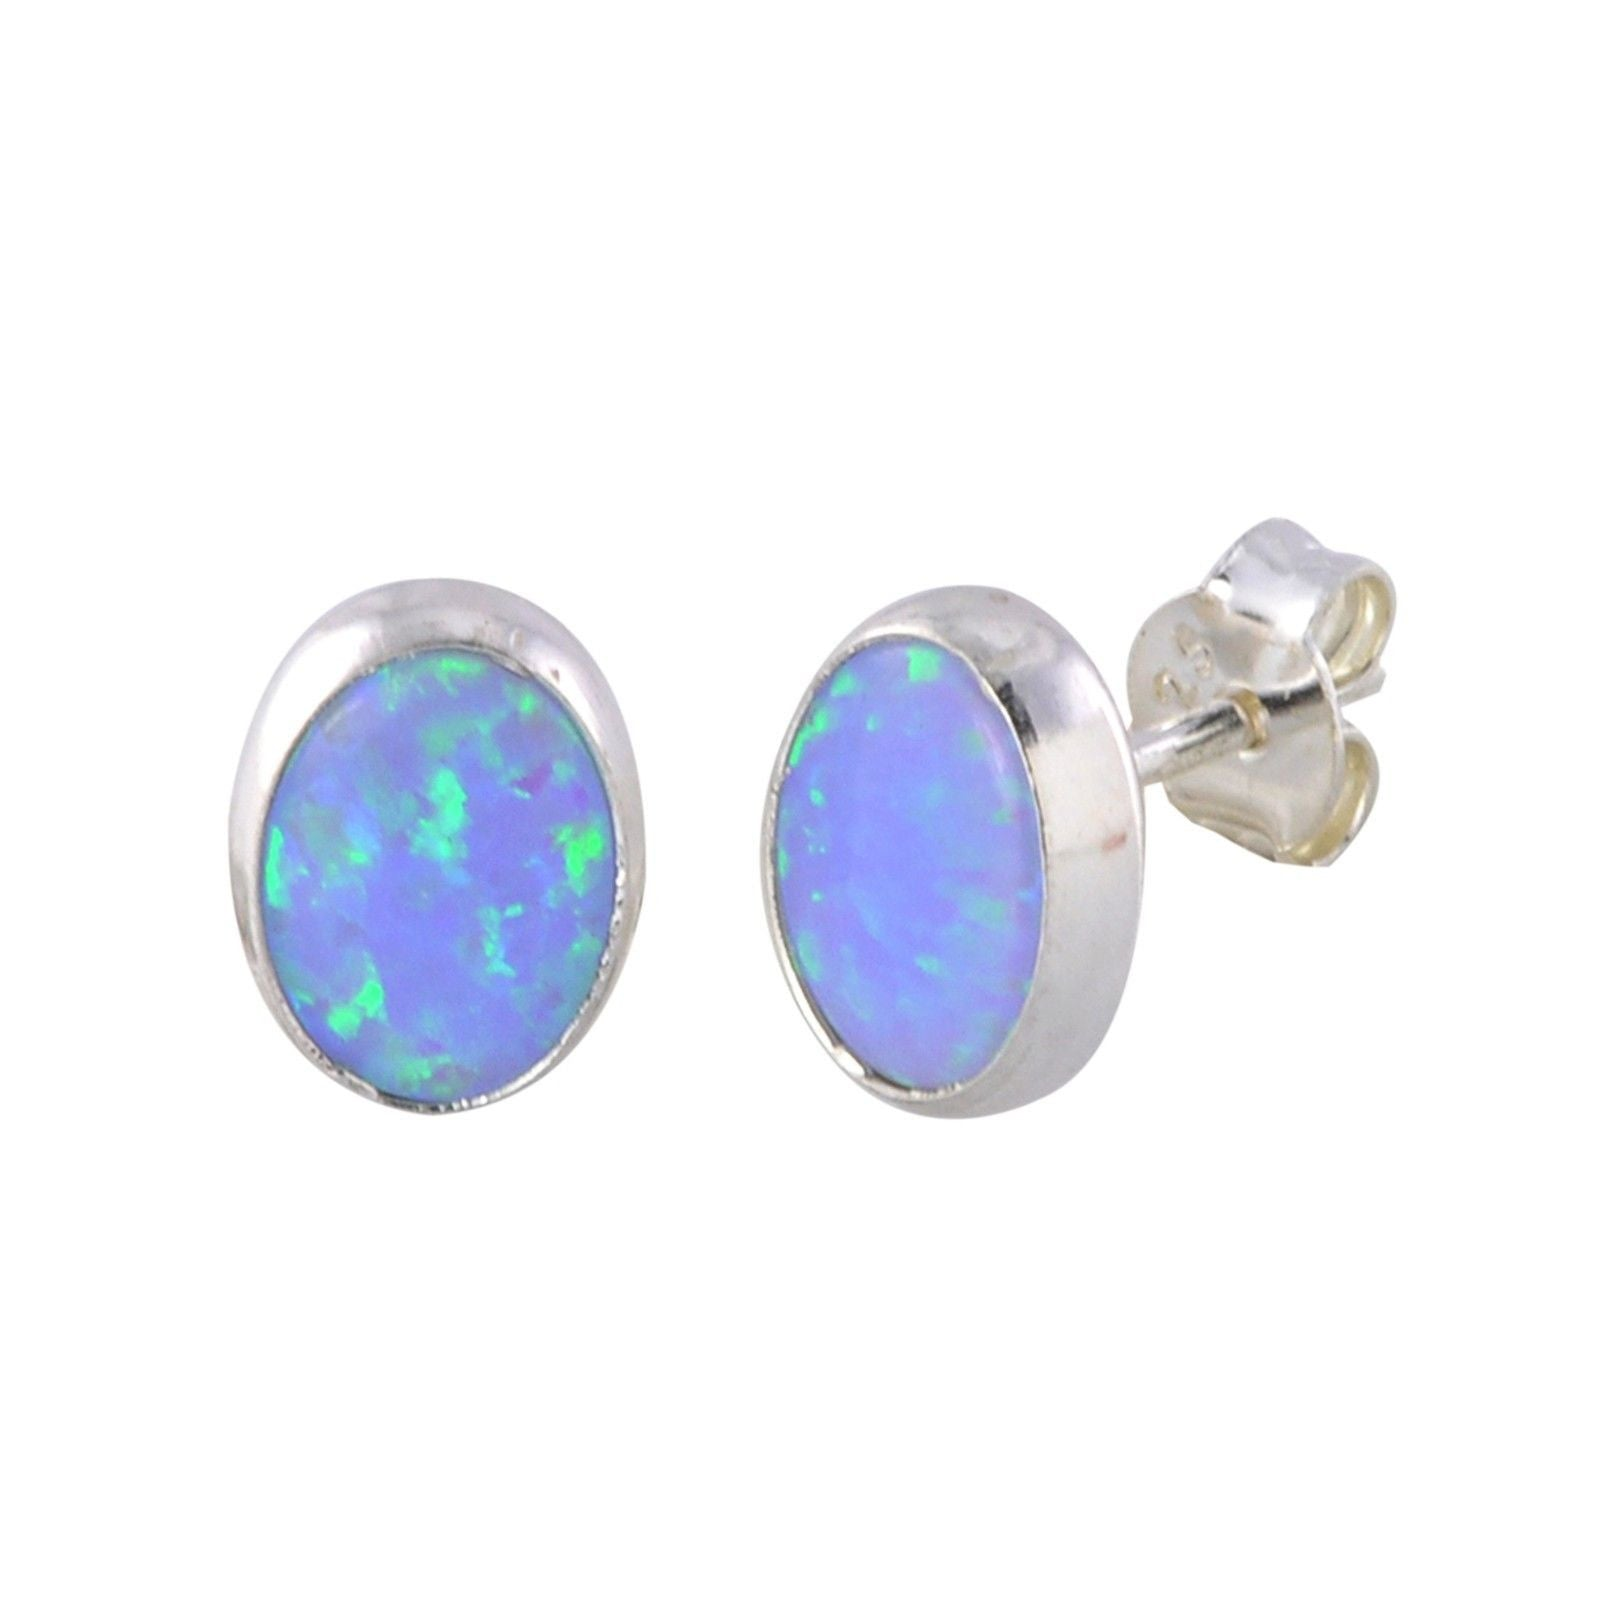 natural opals for carats green gemstone semi solid stone opal flashopal gold black sale